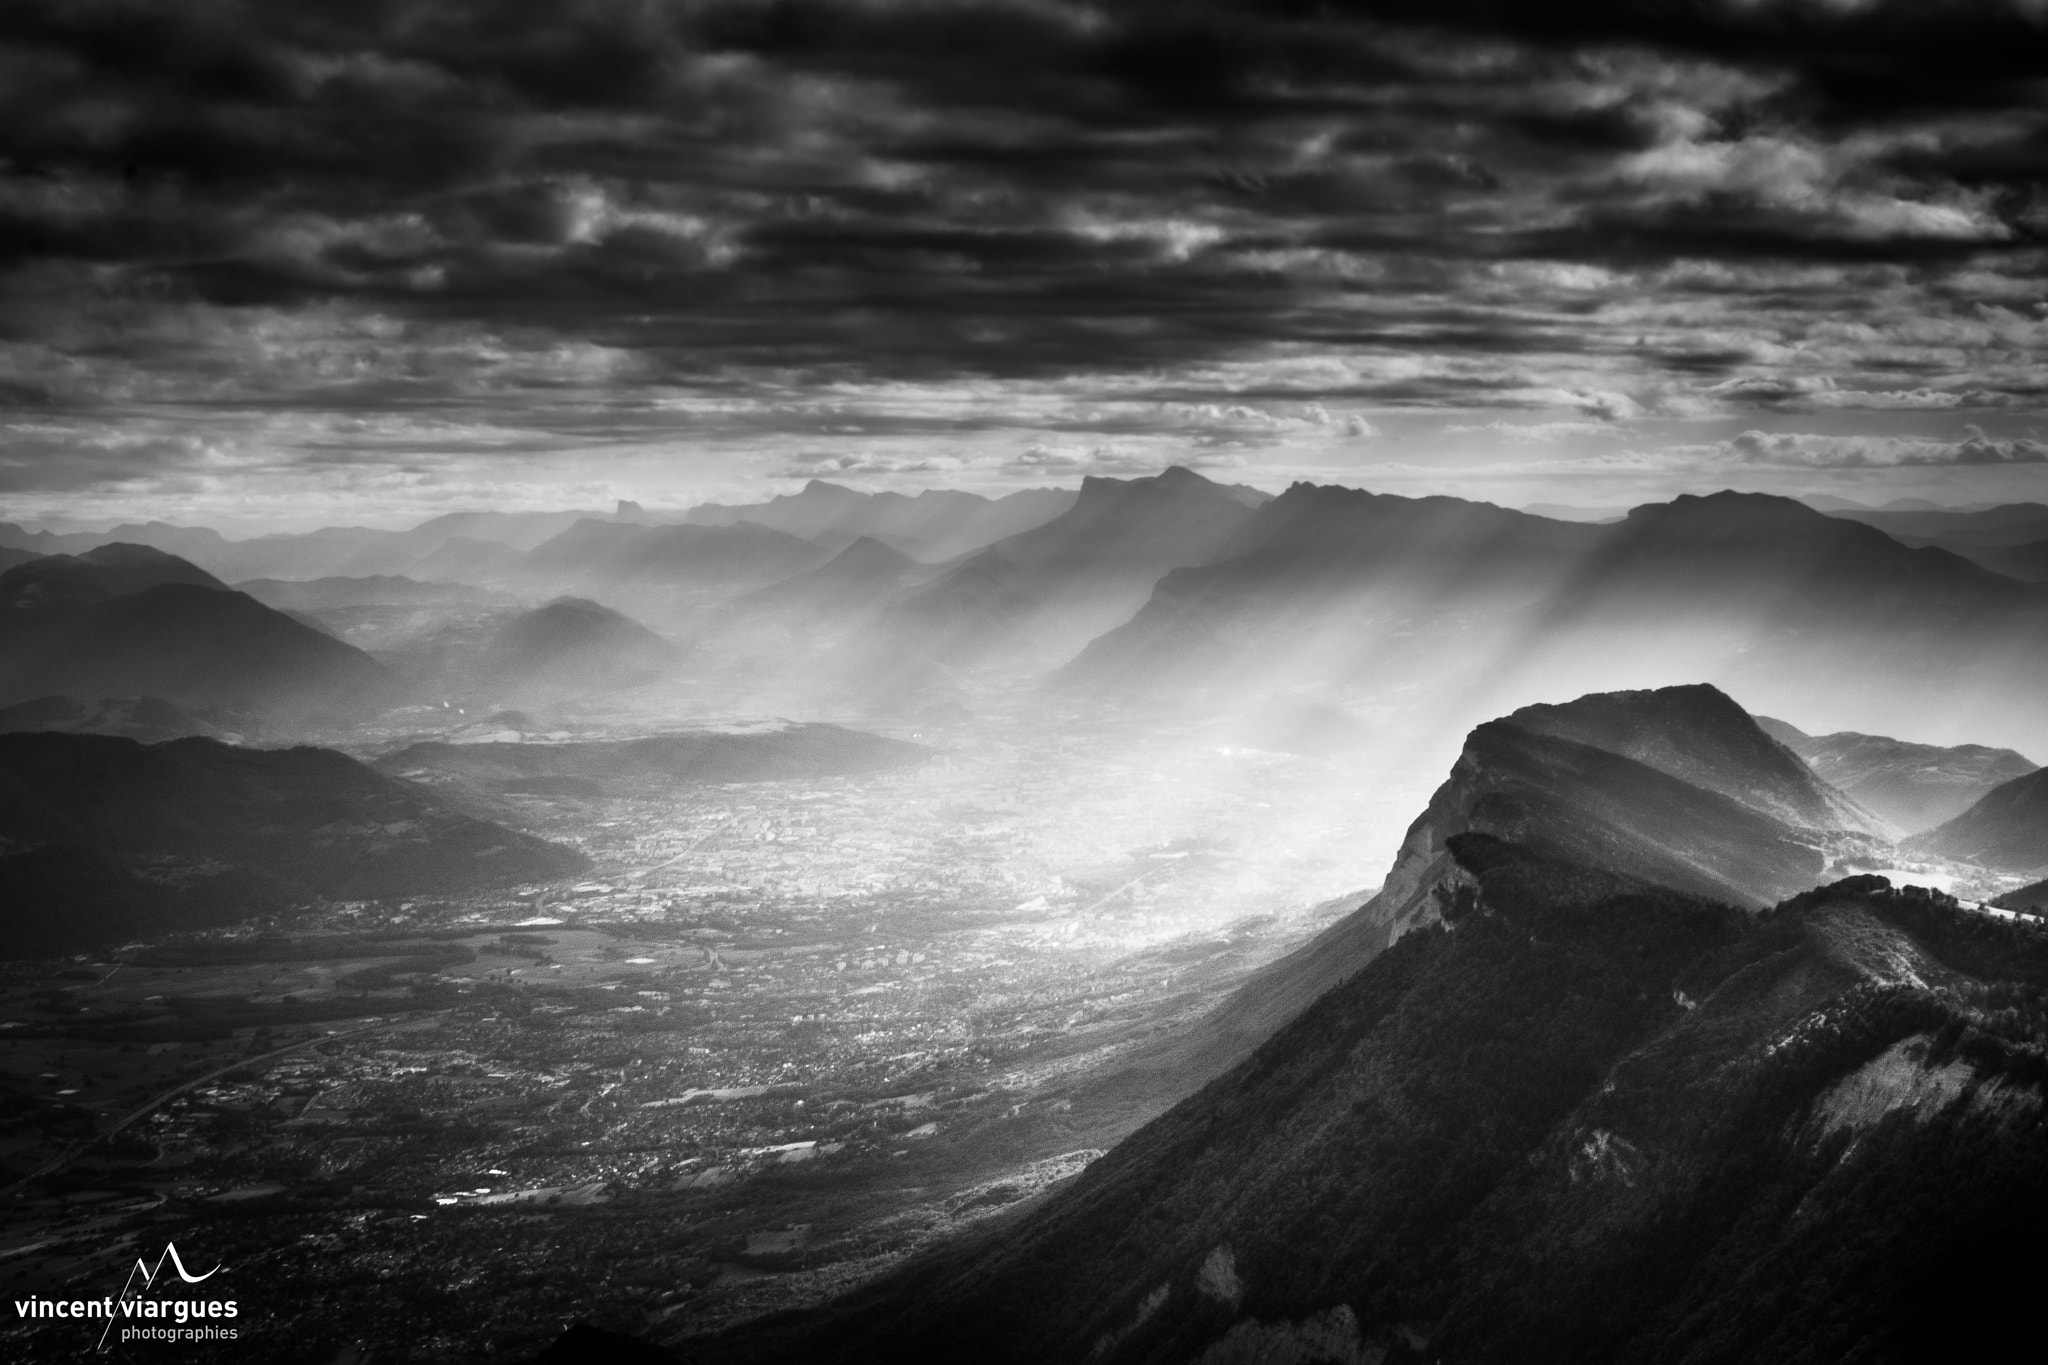 Photograph grenoble by vincent viargues on 500px